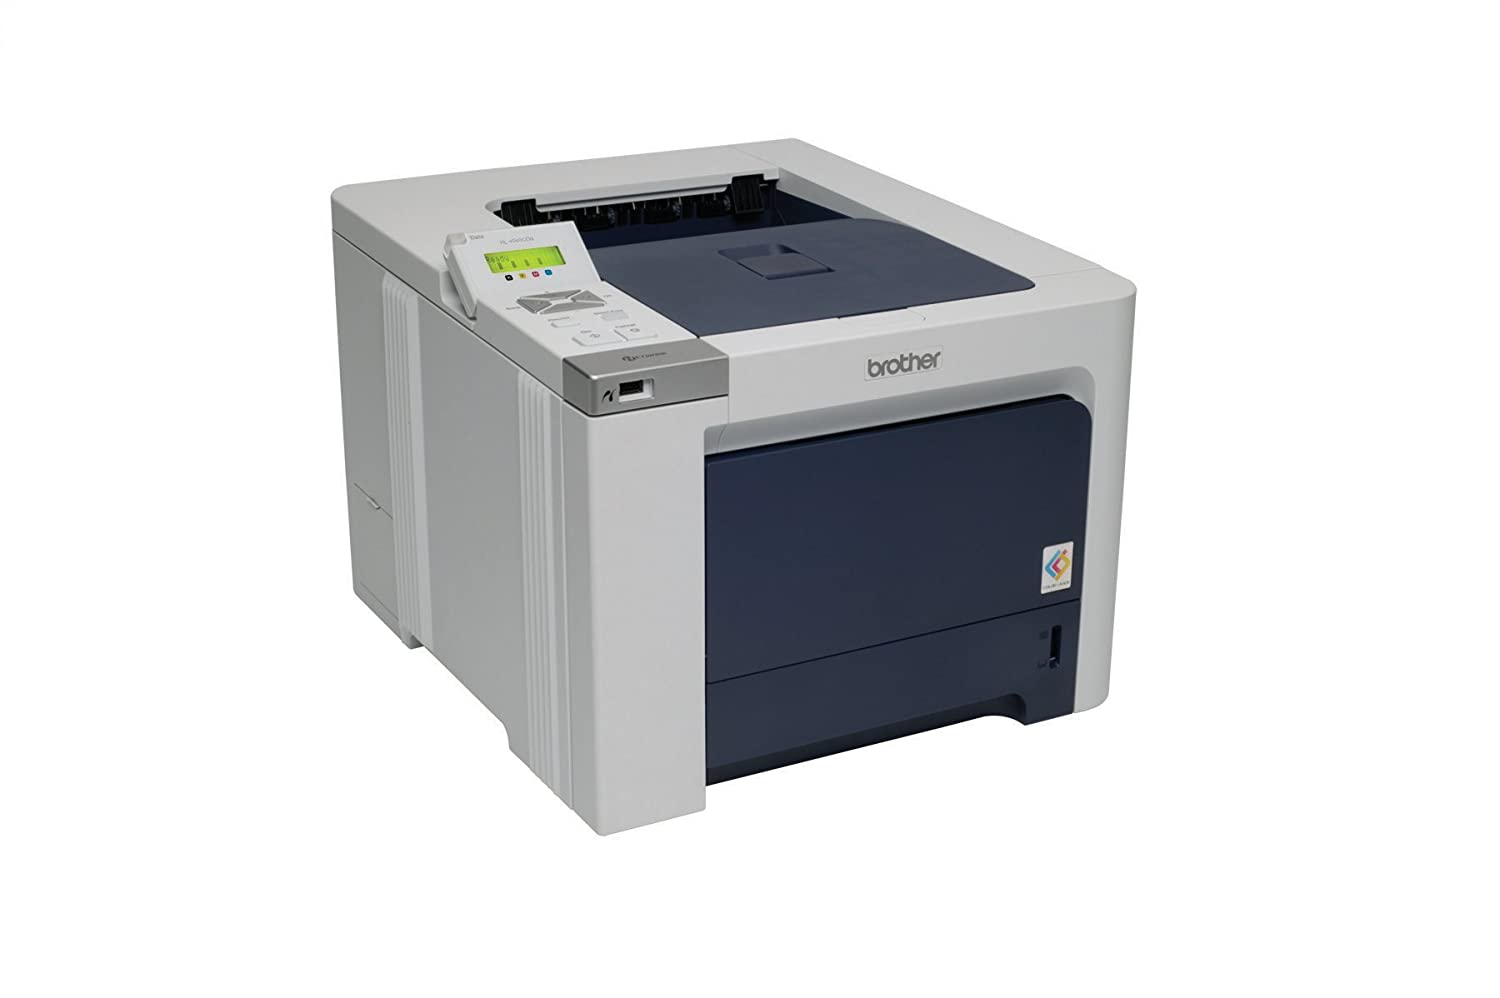 61PHRfg8iHL._SL1500_ amazon com brother hl 4040cdn color laser printer with duplex and  at creativeand.co